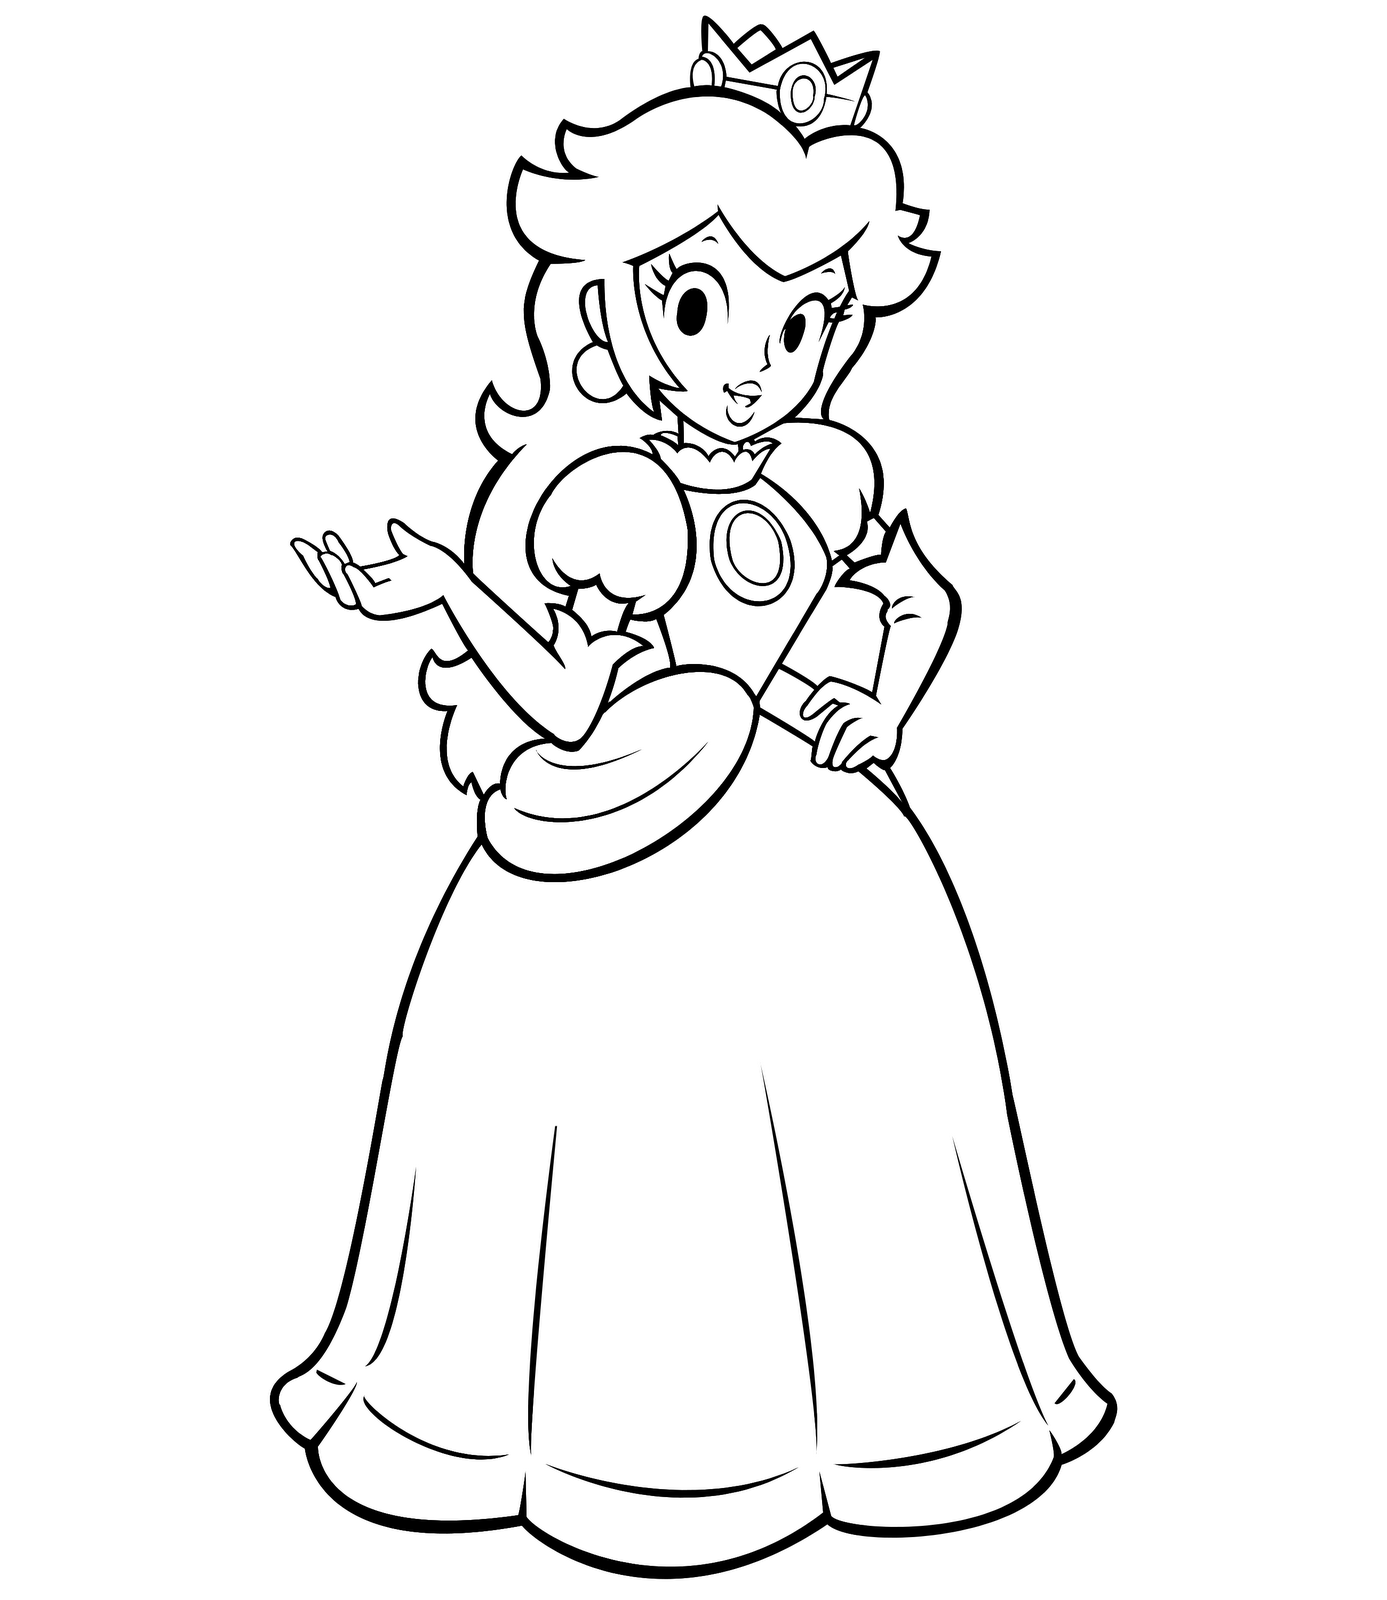 super mario bros princess peach coloring pages high quality